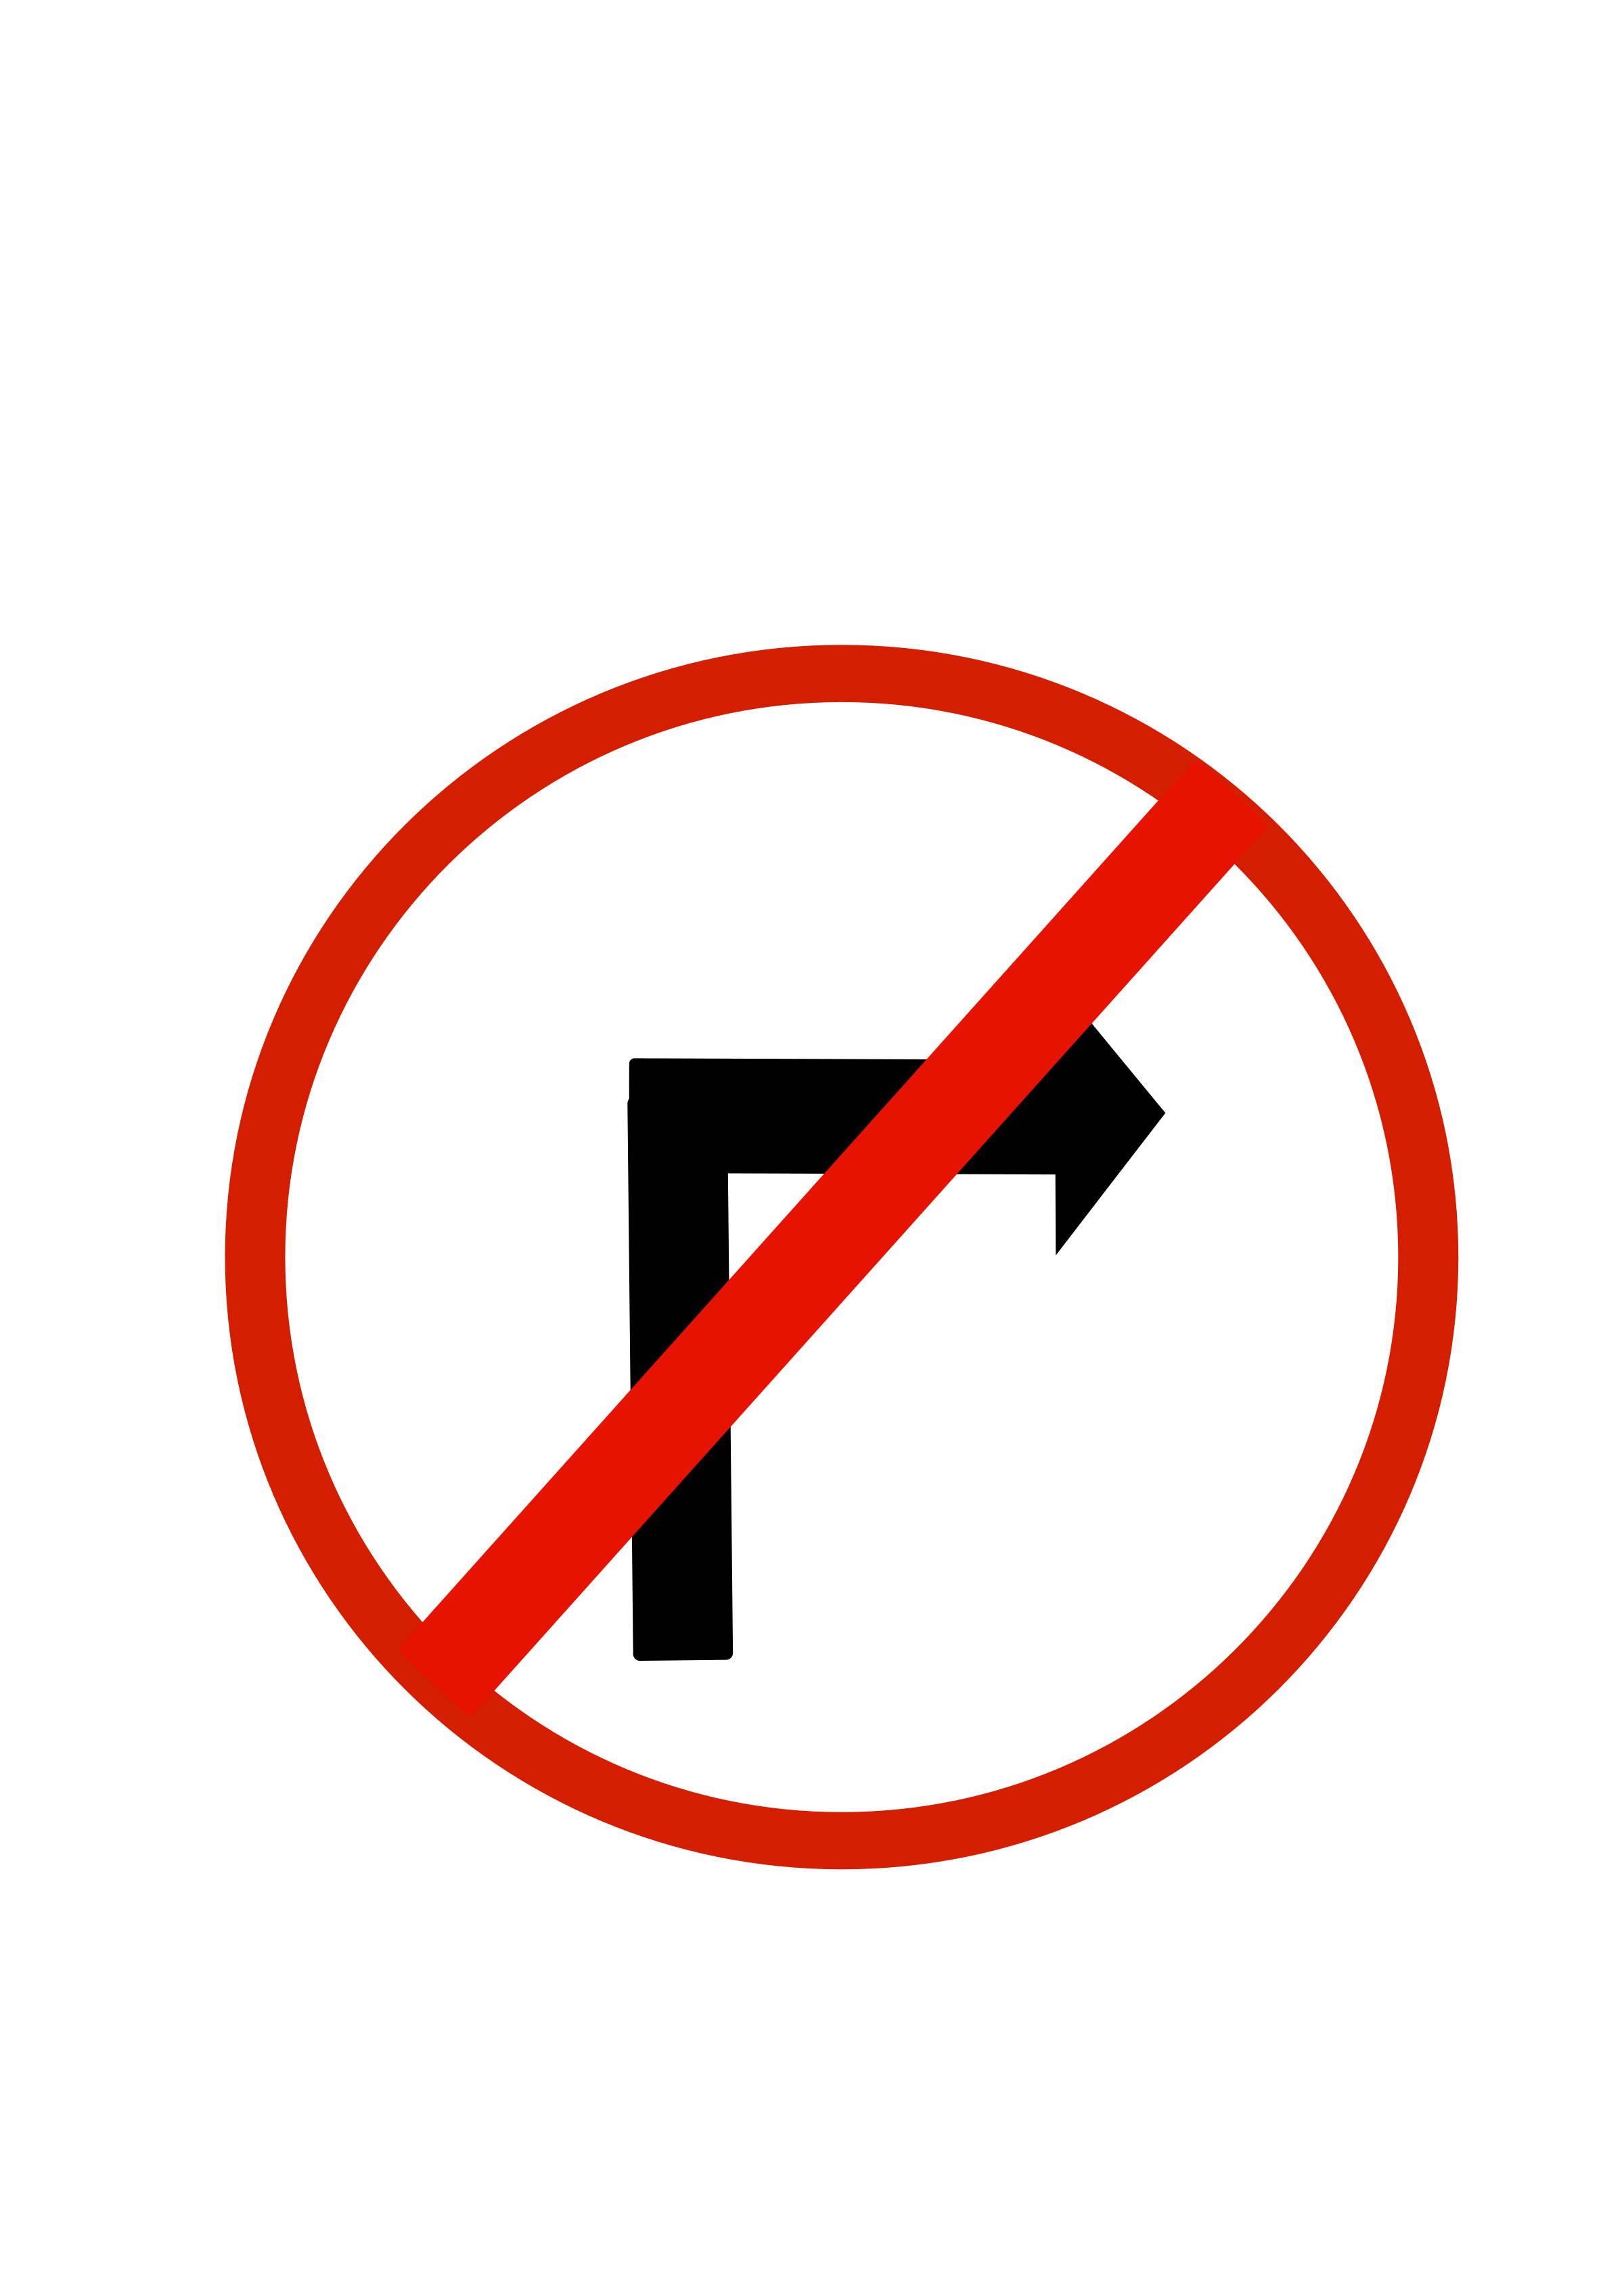 Indian road sign - Right turn - prohibited sign clipart